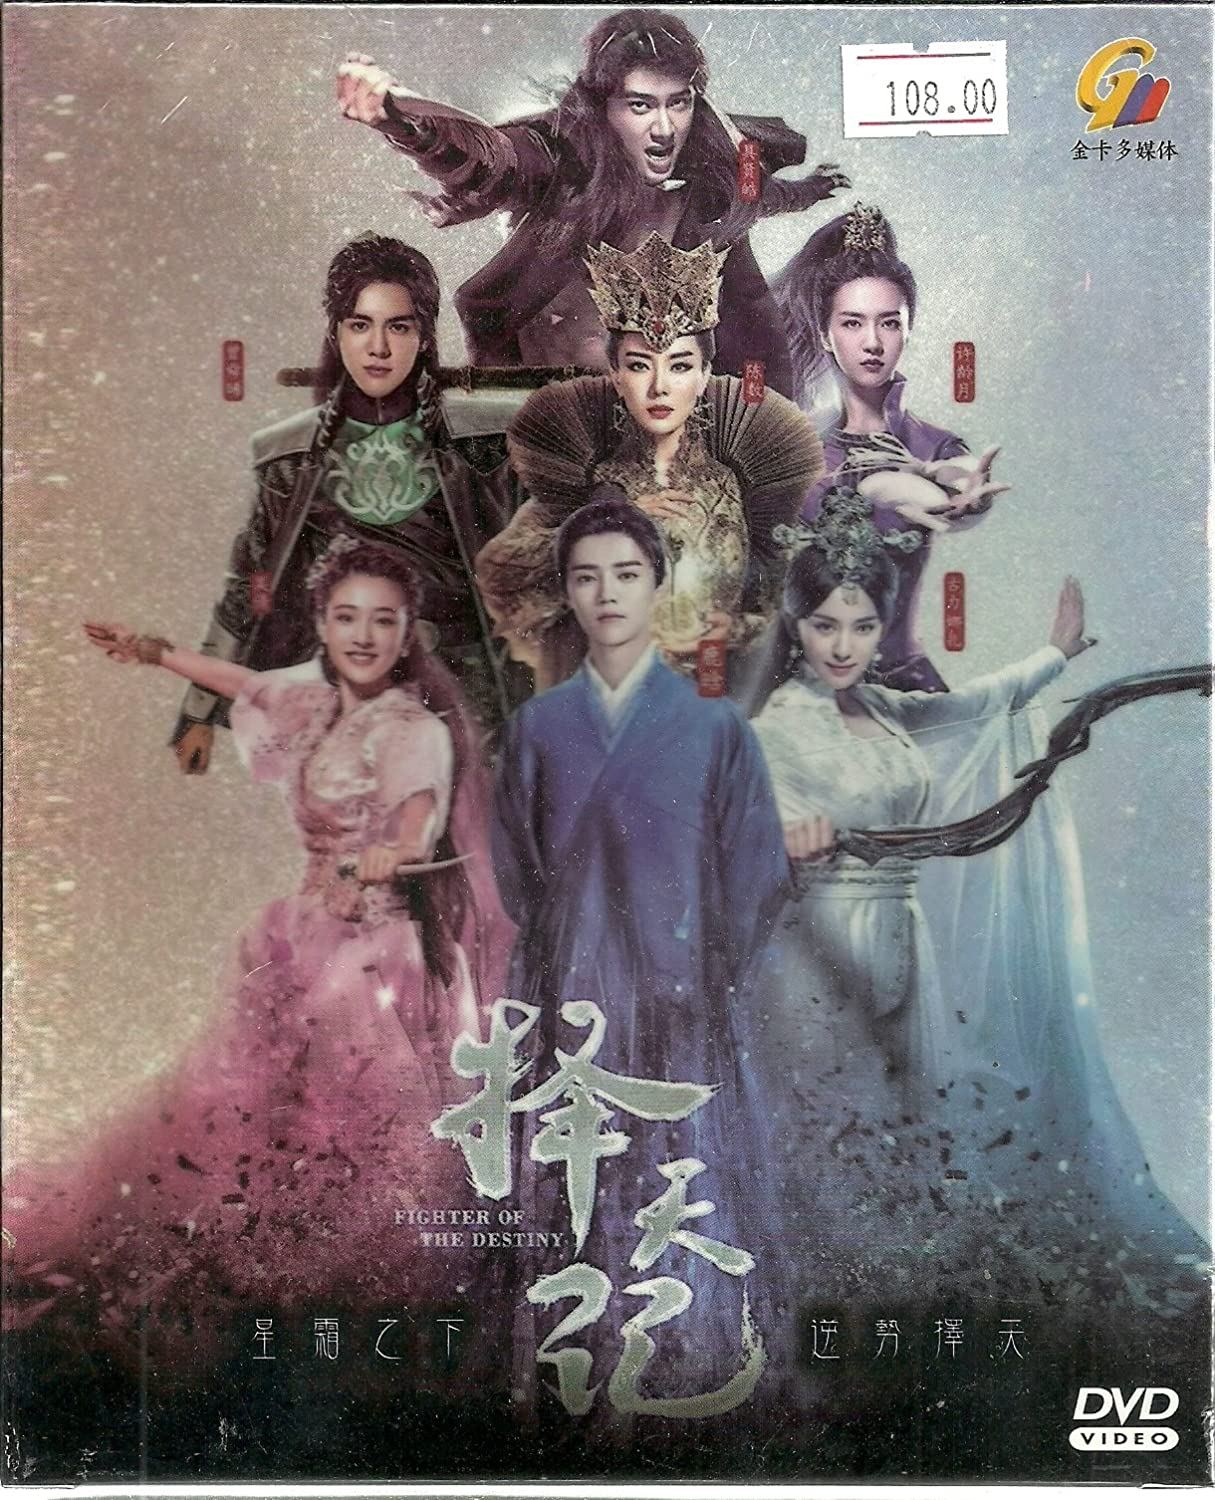 Amazon com: FIGHTER OF THE DESTINY - COMPLETE CHINESE TV SERIES